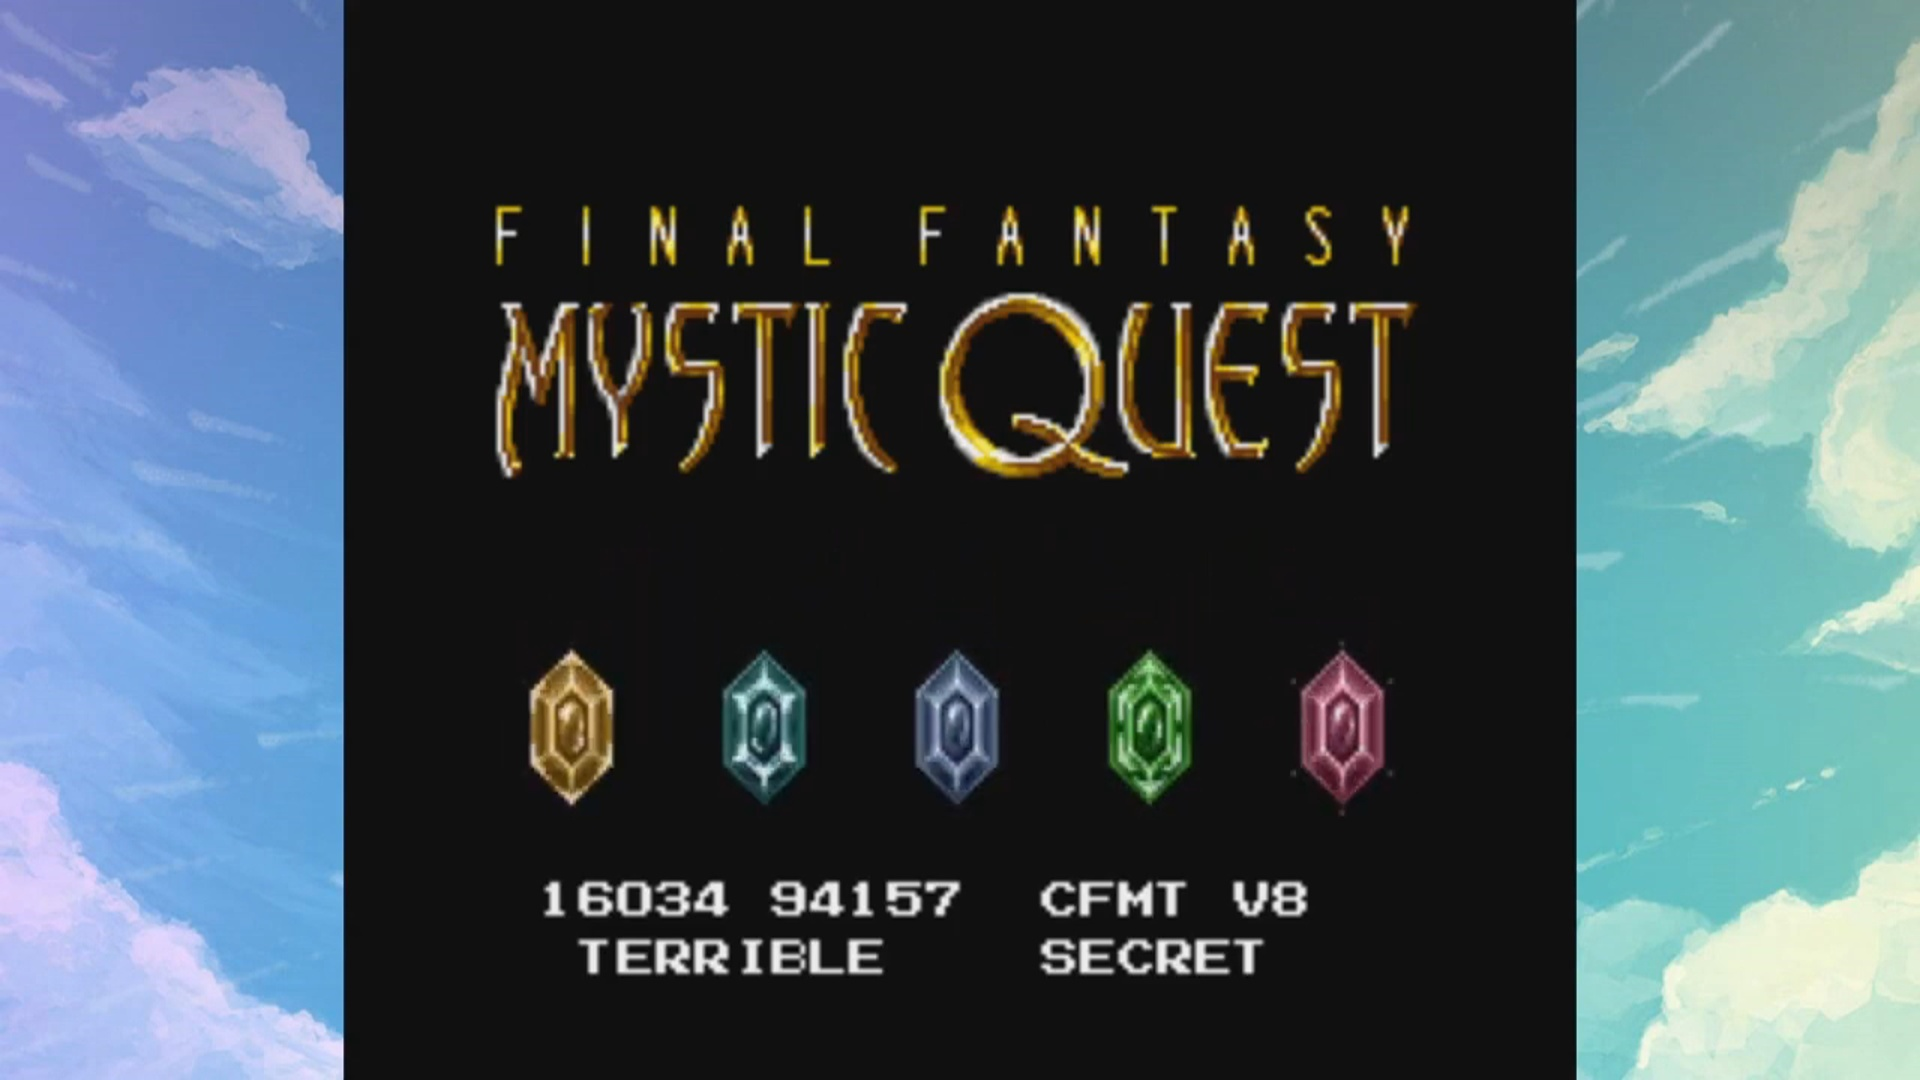 Let's Mess Around on Final Fantasy Mystic Quest Randomizer